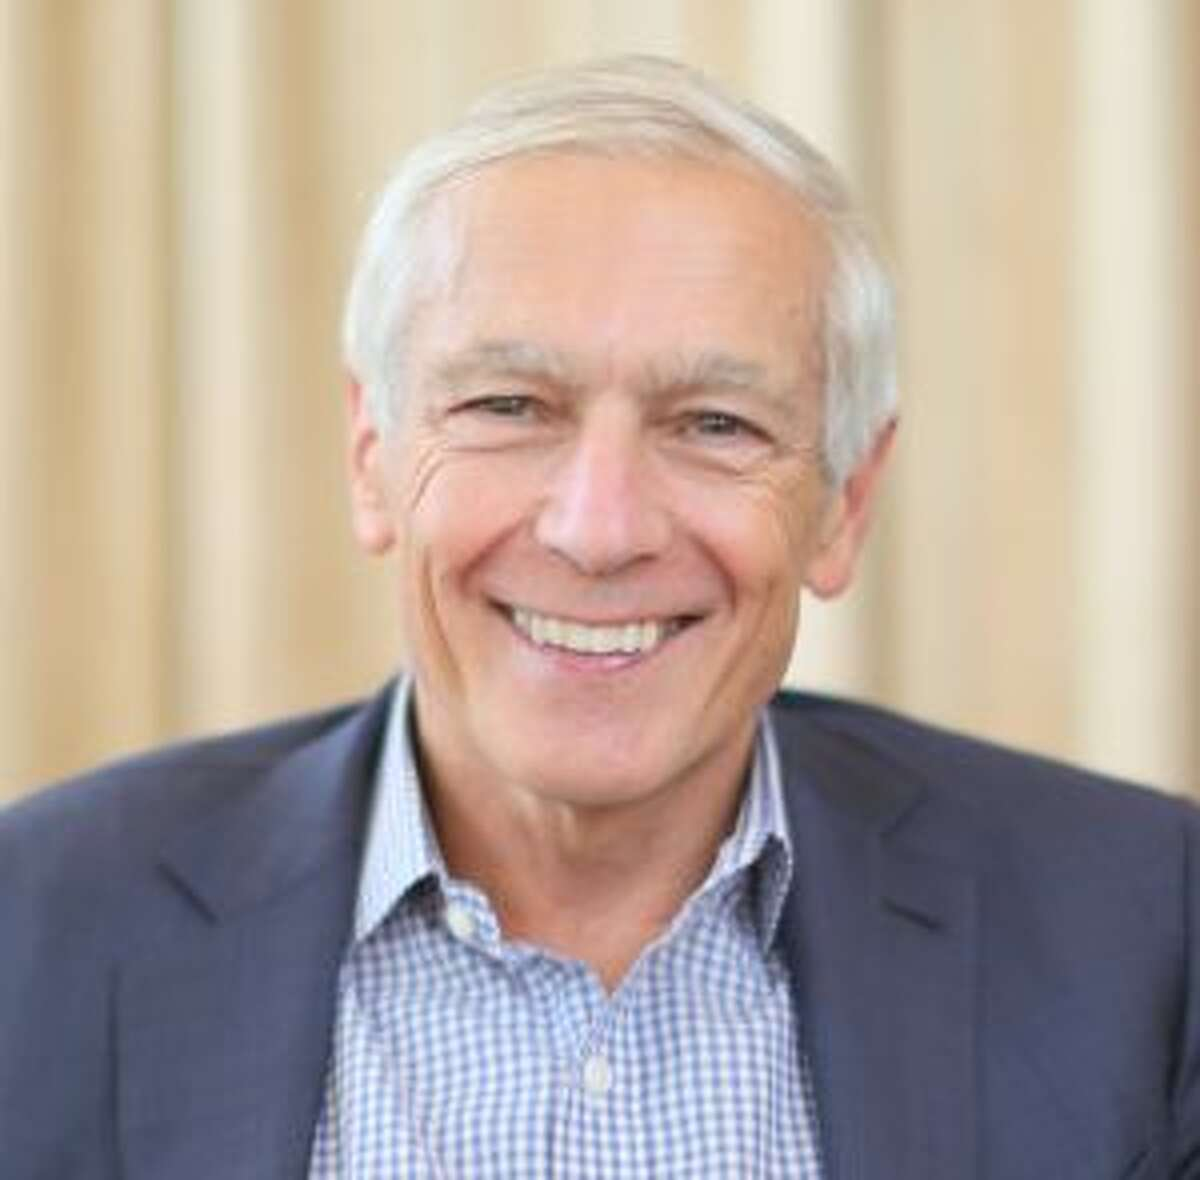 New Canaan Library and Grace Farms Foundation will present an insightful conversation with retired U.S. Army Gen. Wesley Clark, on the topics of global policy and America's potential for growth and leadership. Retired U.S. Army Gen. Wesley Clark